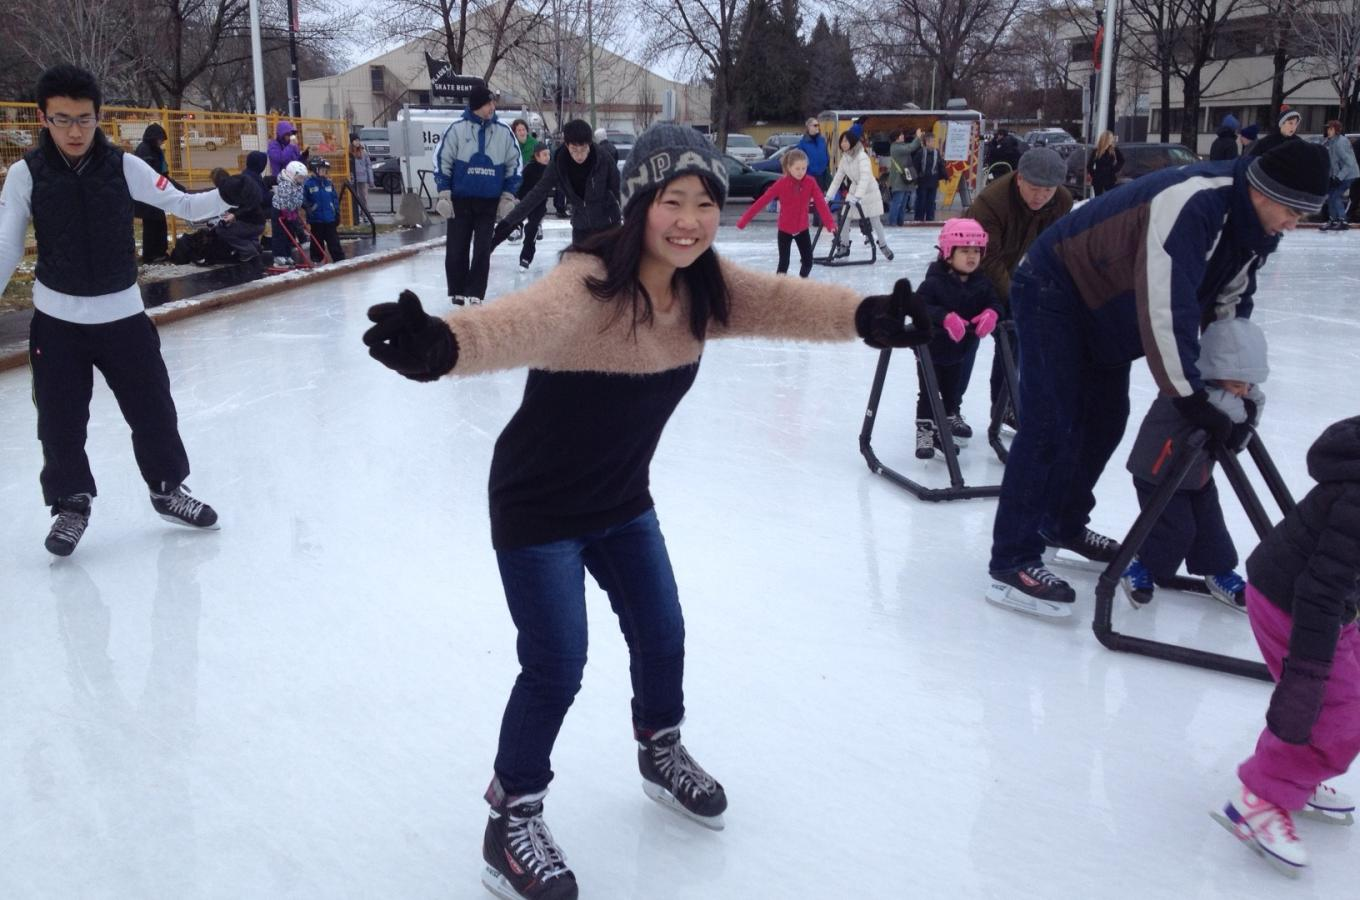 Students ice scating